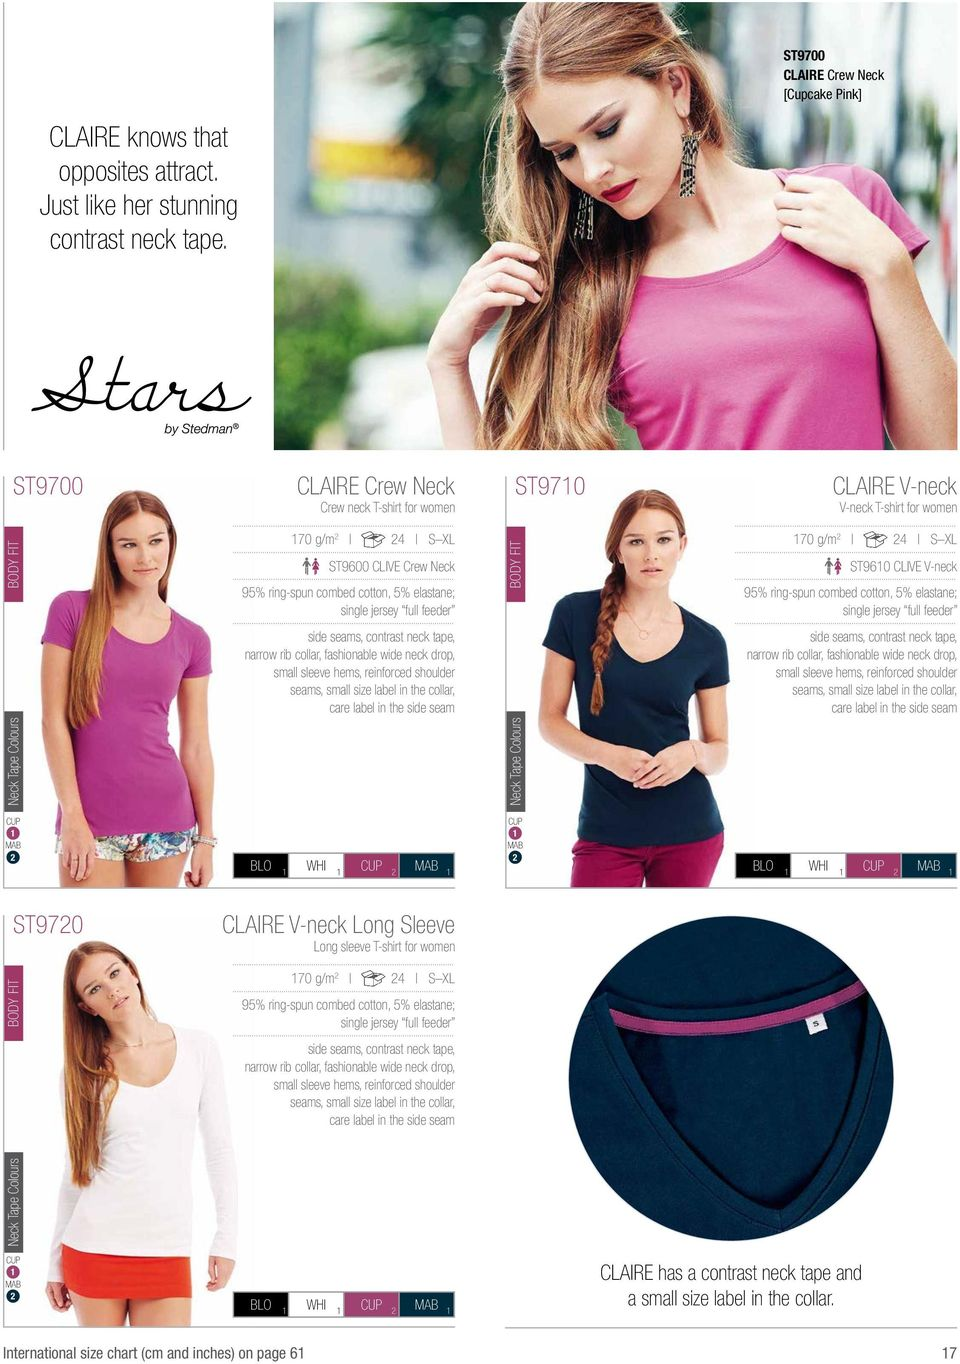 tape, narrow rib collar, fashionable wide neck drop, small sleeve hems, reinforced shoulder seams, small size label in the collar, care label in the side seam BODY FIT ST9710 CLAIRE V-neck V-neck